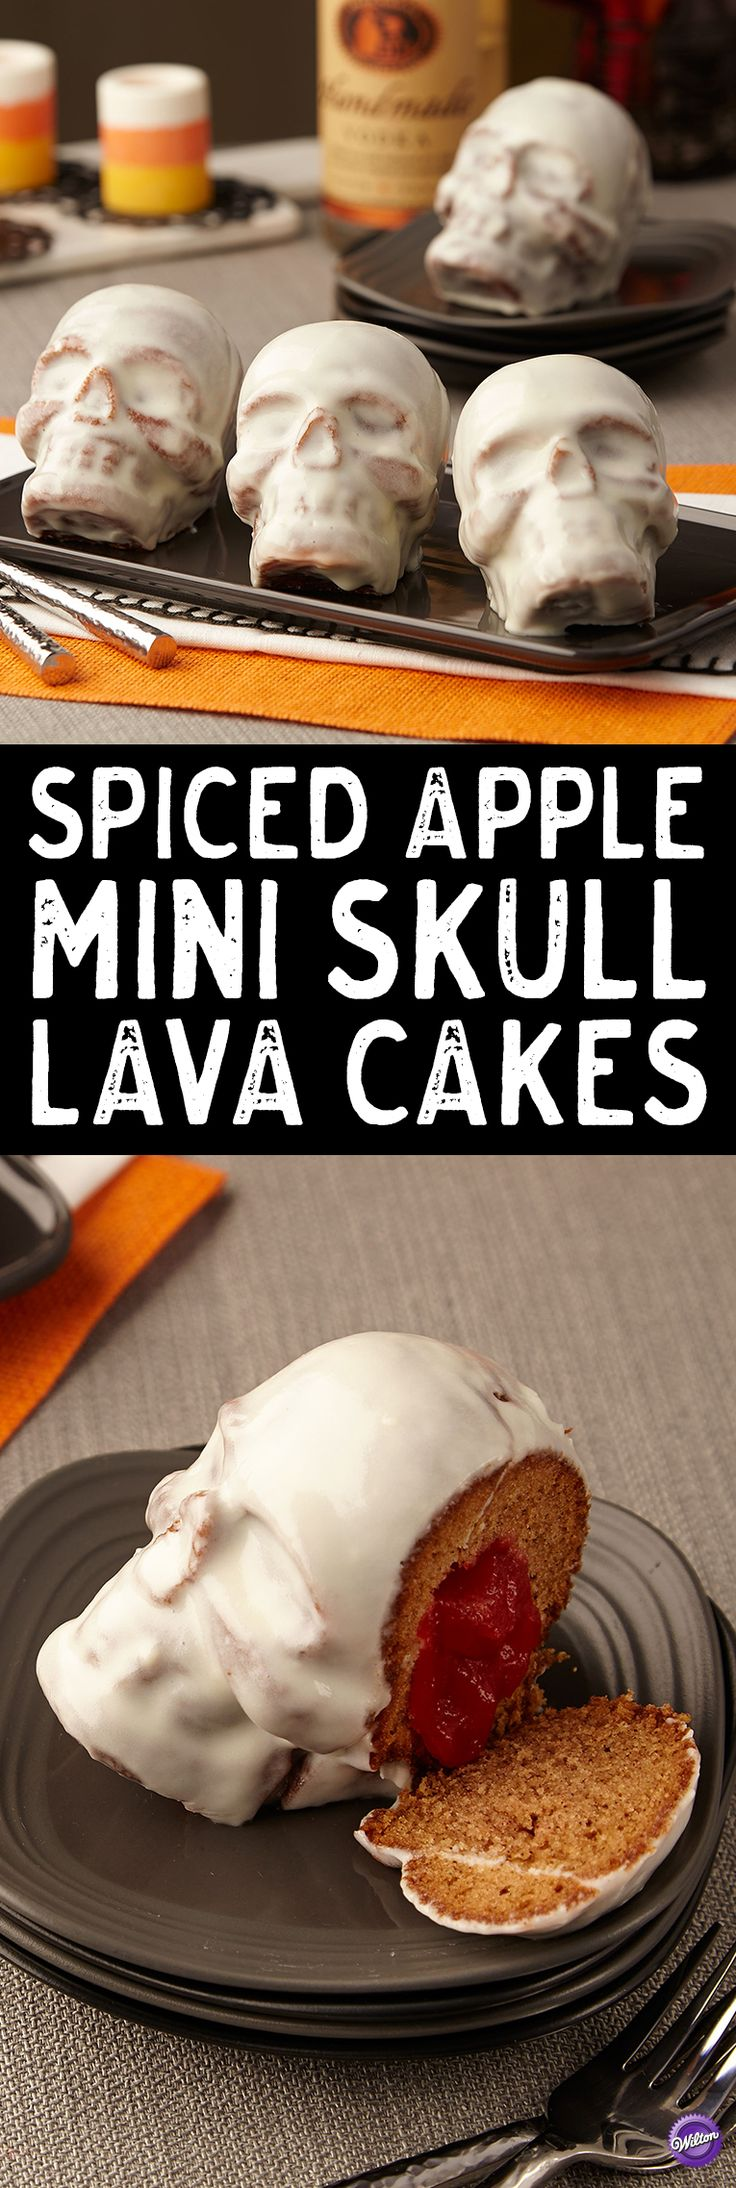 We're filling your heads with Vodka-spiked Halloween recipes with these Spiced Apple Mini Skull Lava Cakes! Apple spice cake plays up cinnamon, ground clove and nutmeg notes, but the lava-filled center is oozing with Vodka-spiked, applesauce-infused, cinnamon flavor. Vanilla-flavored, cream-cheese glaze envelopes mini skull cakes, adding life-like color and completing this drop-dead flavor profile.